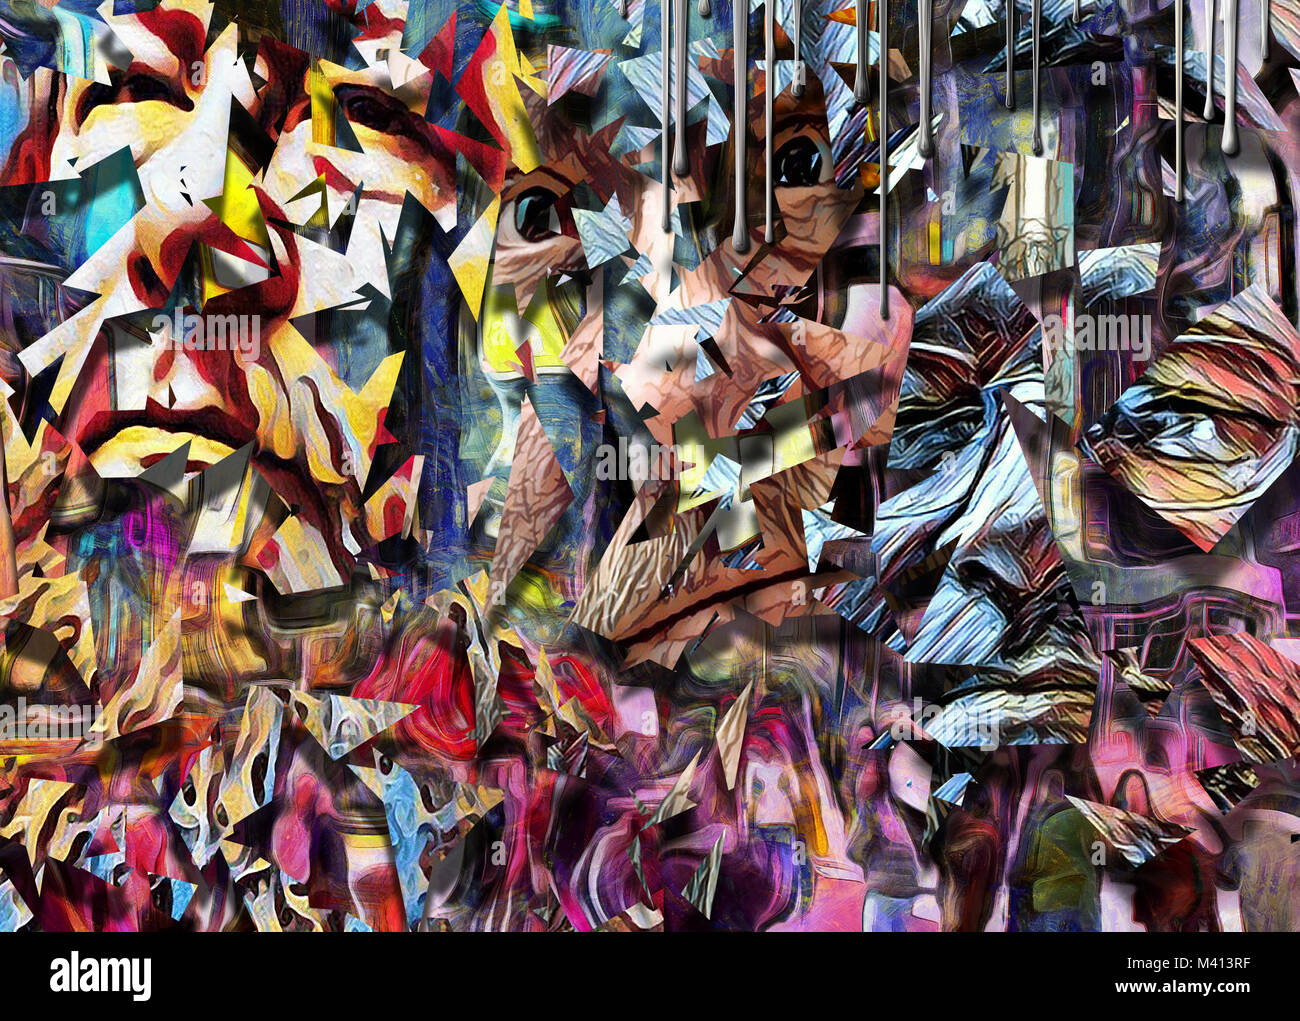 Complex abstract painting. Colorful mosaic elements and pieces of men's faces. - Stock Image